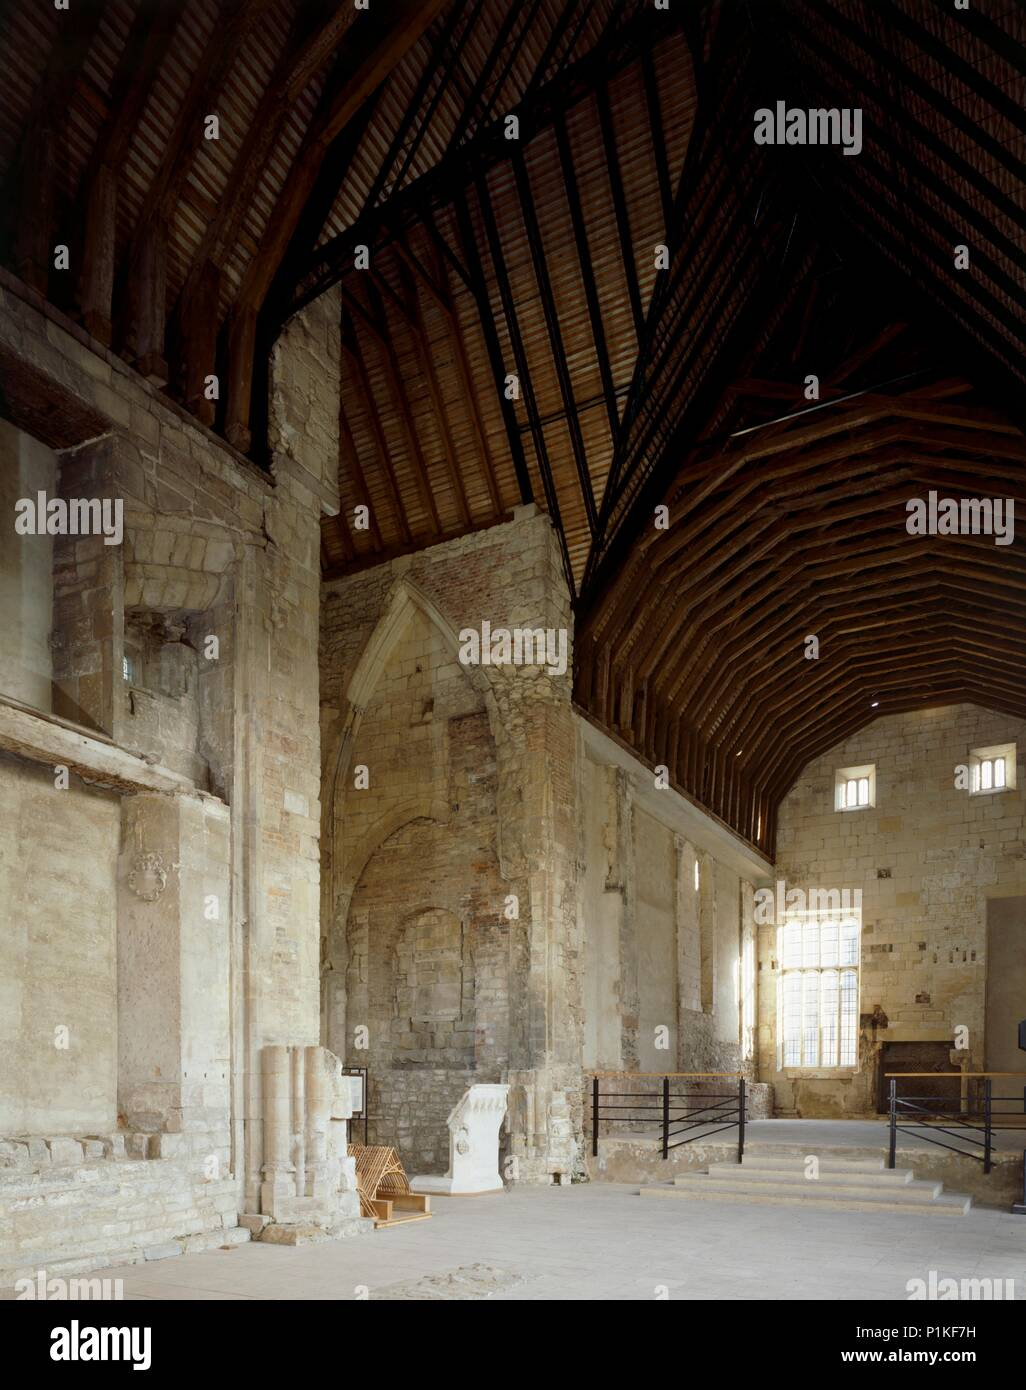 Blackfriars, Gloucester, Gloucestershire, c1989-c2007. Interior view of the nave of the 13th century church of the Dominican priory looking east. - Stock Image